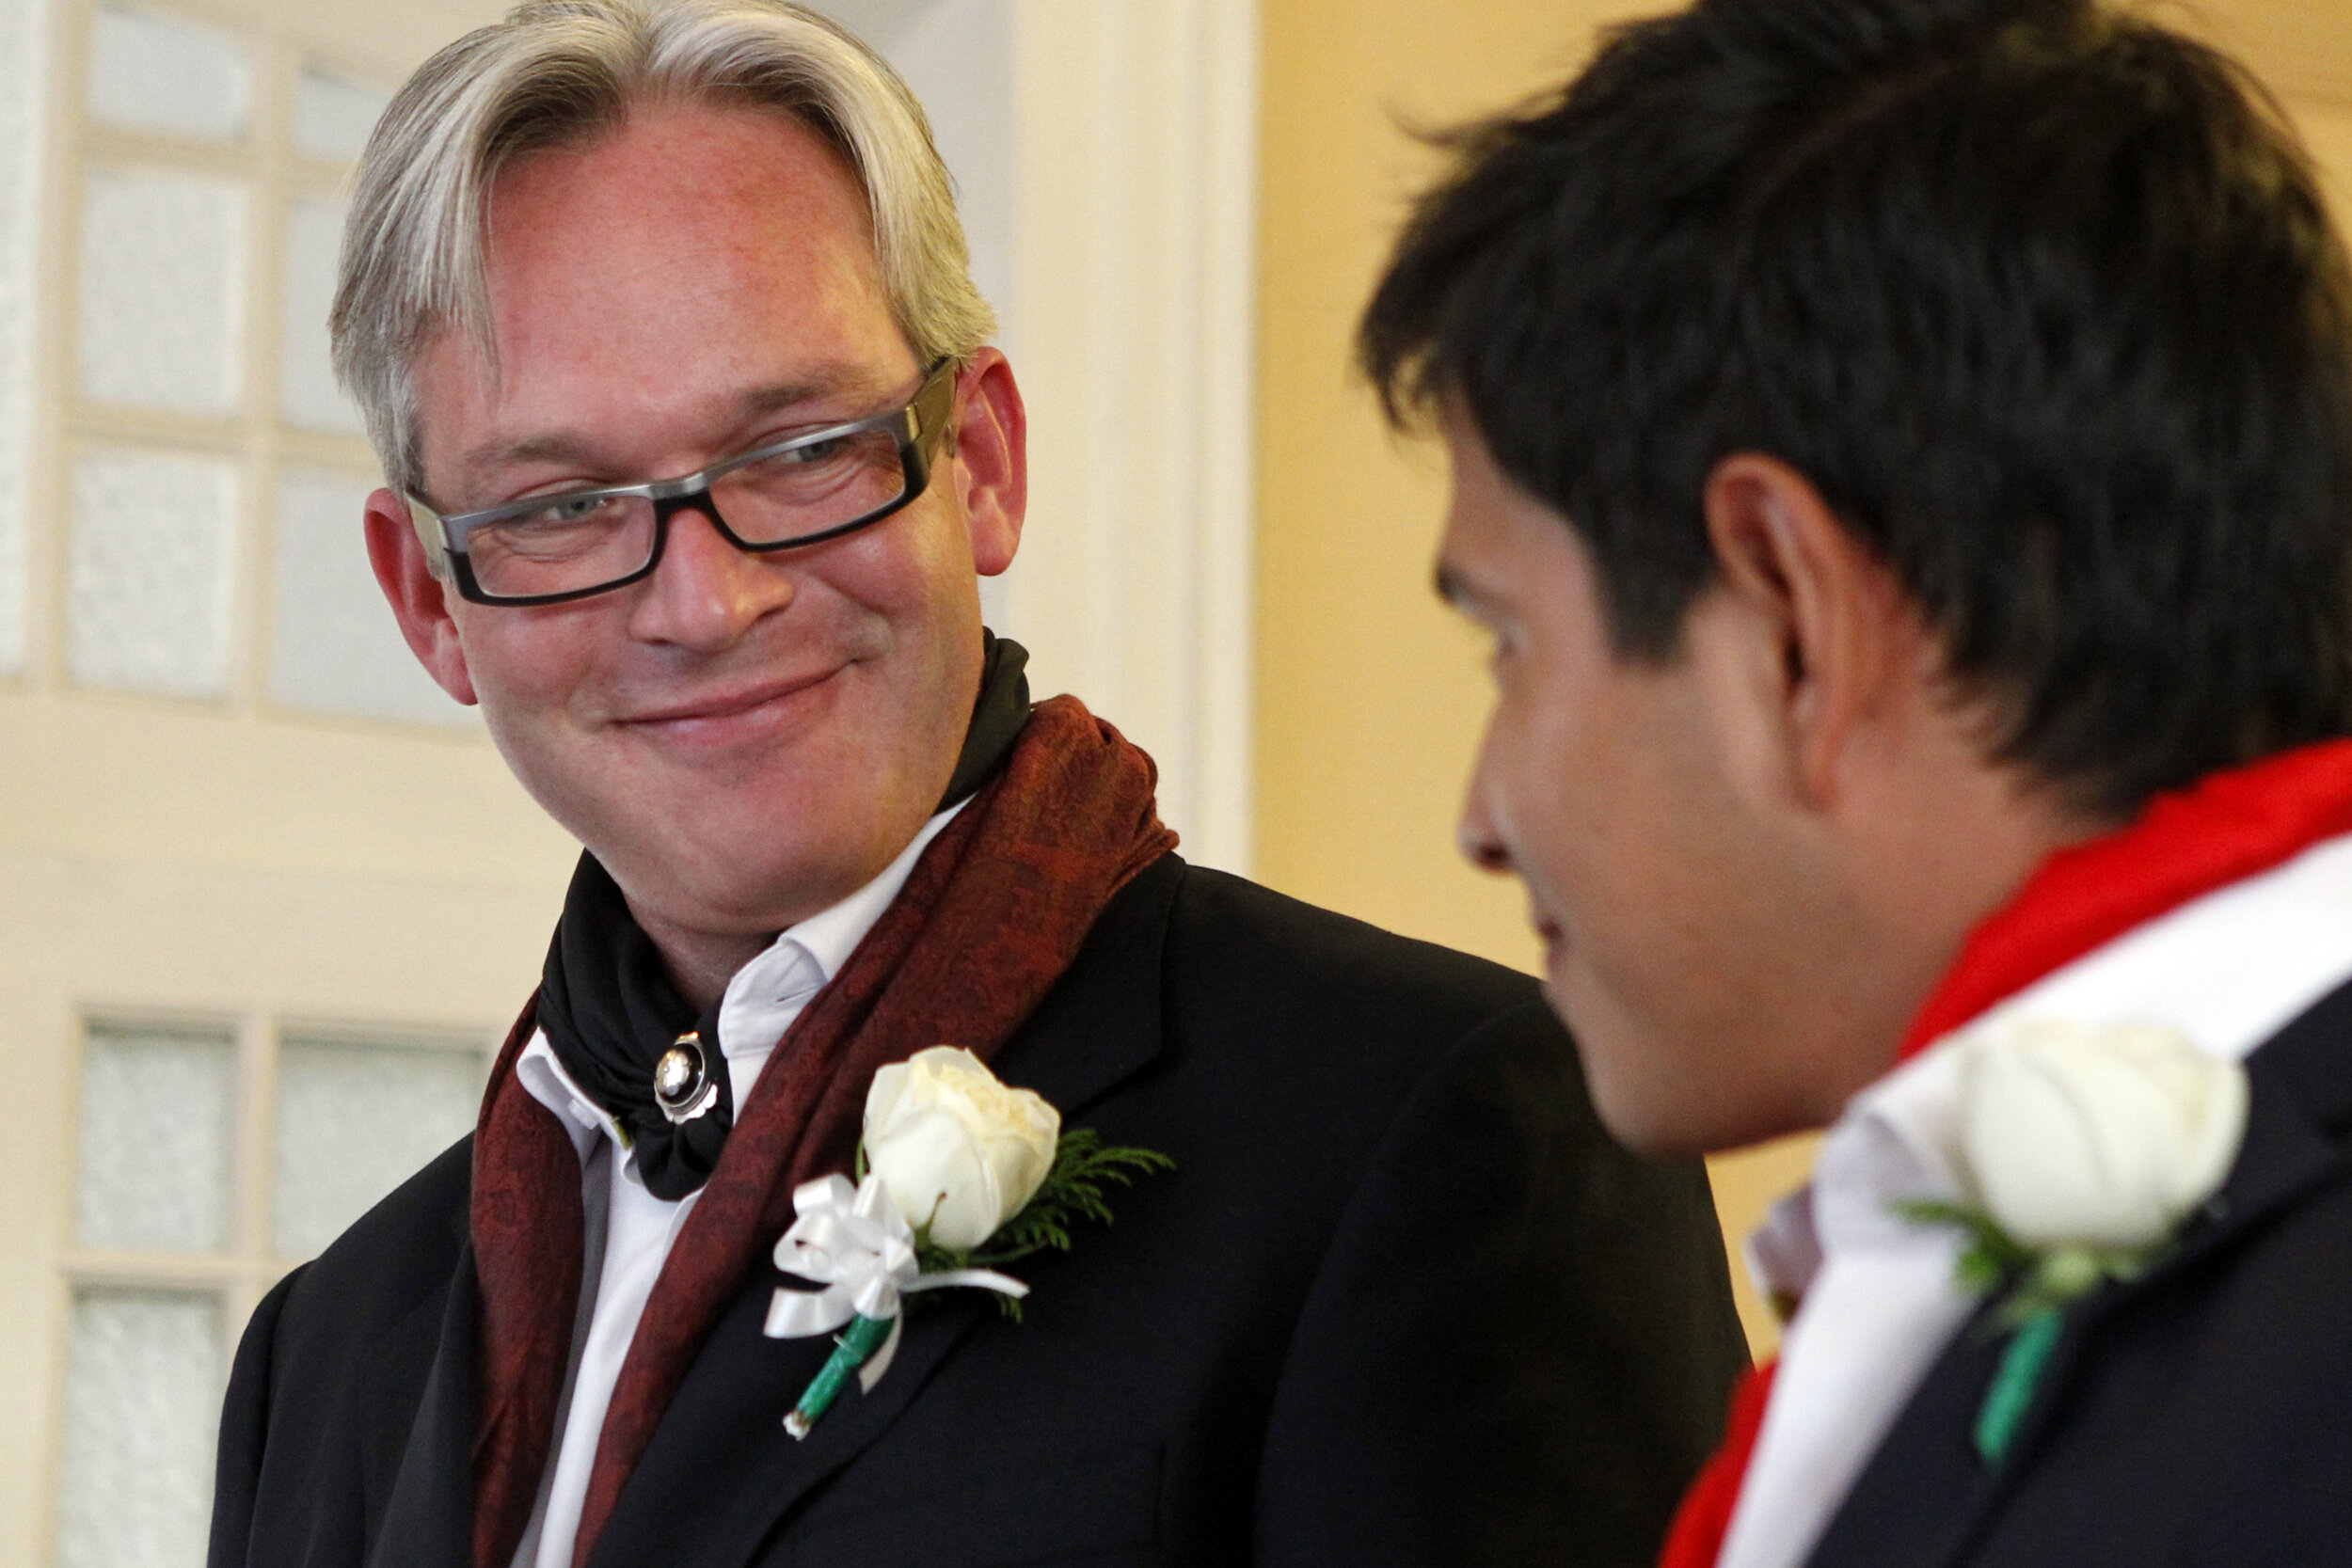 Patrick Dove/Standard-TimesJ.W. Lown gives a smile to his same-sex partner as they stand before the judge at their Wedding in November at the Hotel Casa Gonzalez in Mexico City. Lown gave up his fourth term as the mayor of San Angelo to move to Mexico with his partner in 2009.shot 11.16.13 archived 12.06.13